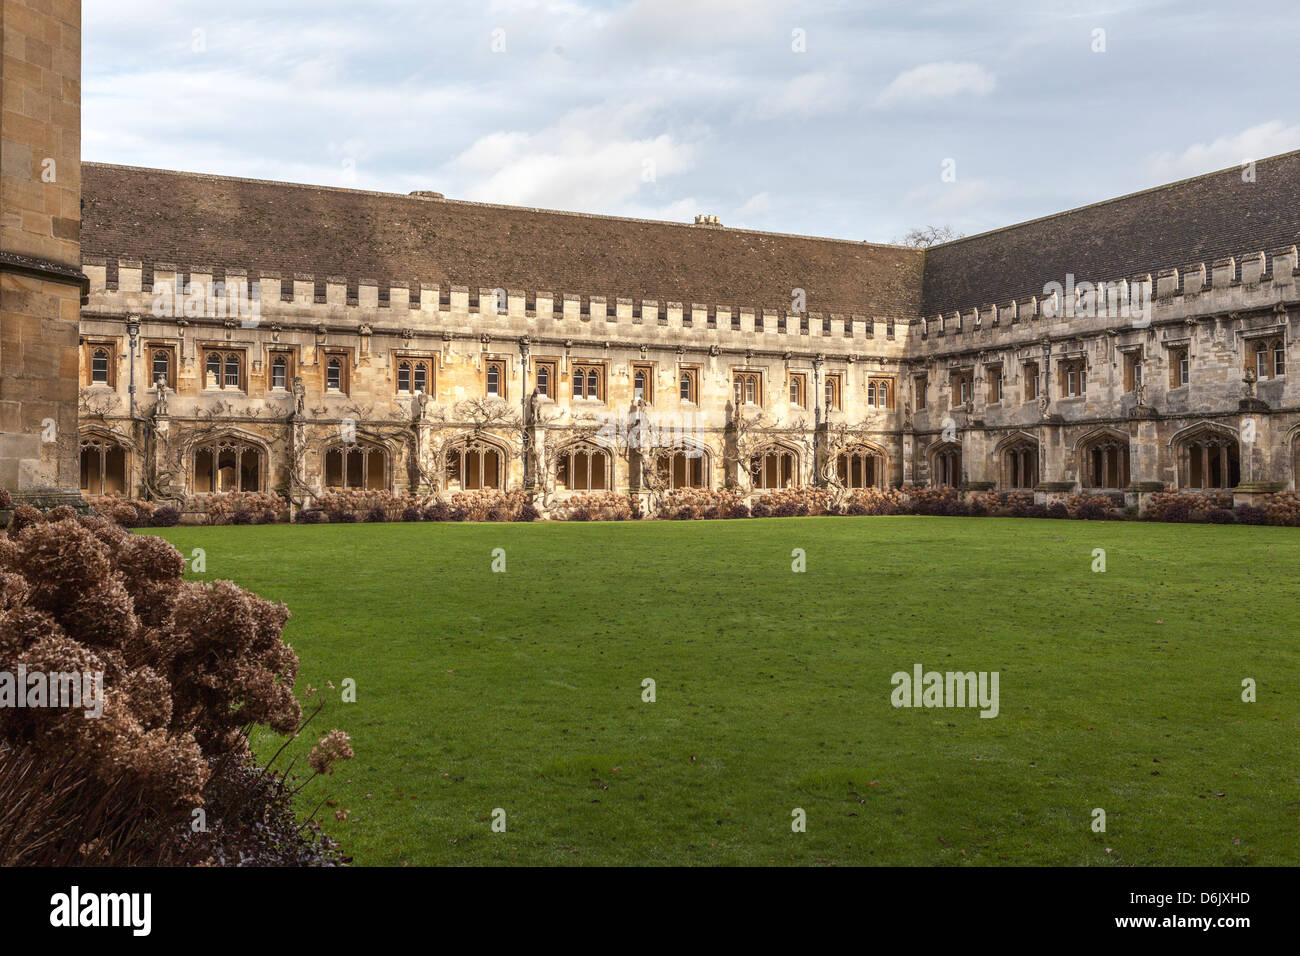 Le Cloître du Magdalen College, Oxford, Oxfordshire, Angleterre, Royaume-Uni, Europe Photo Stock